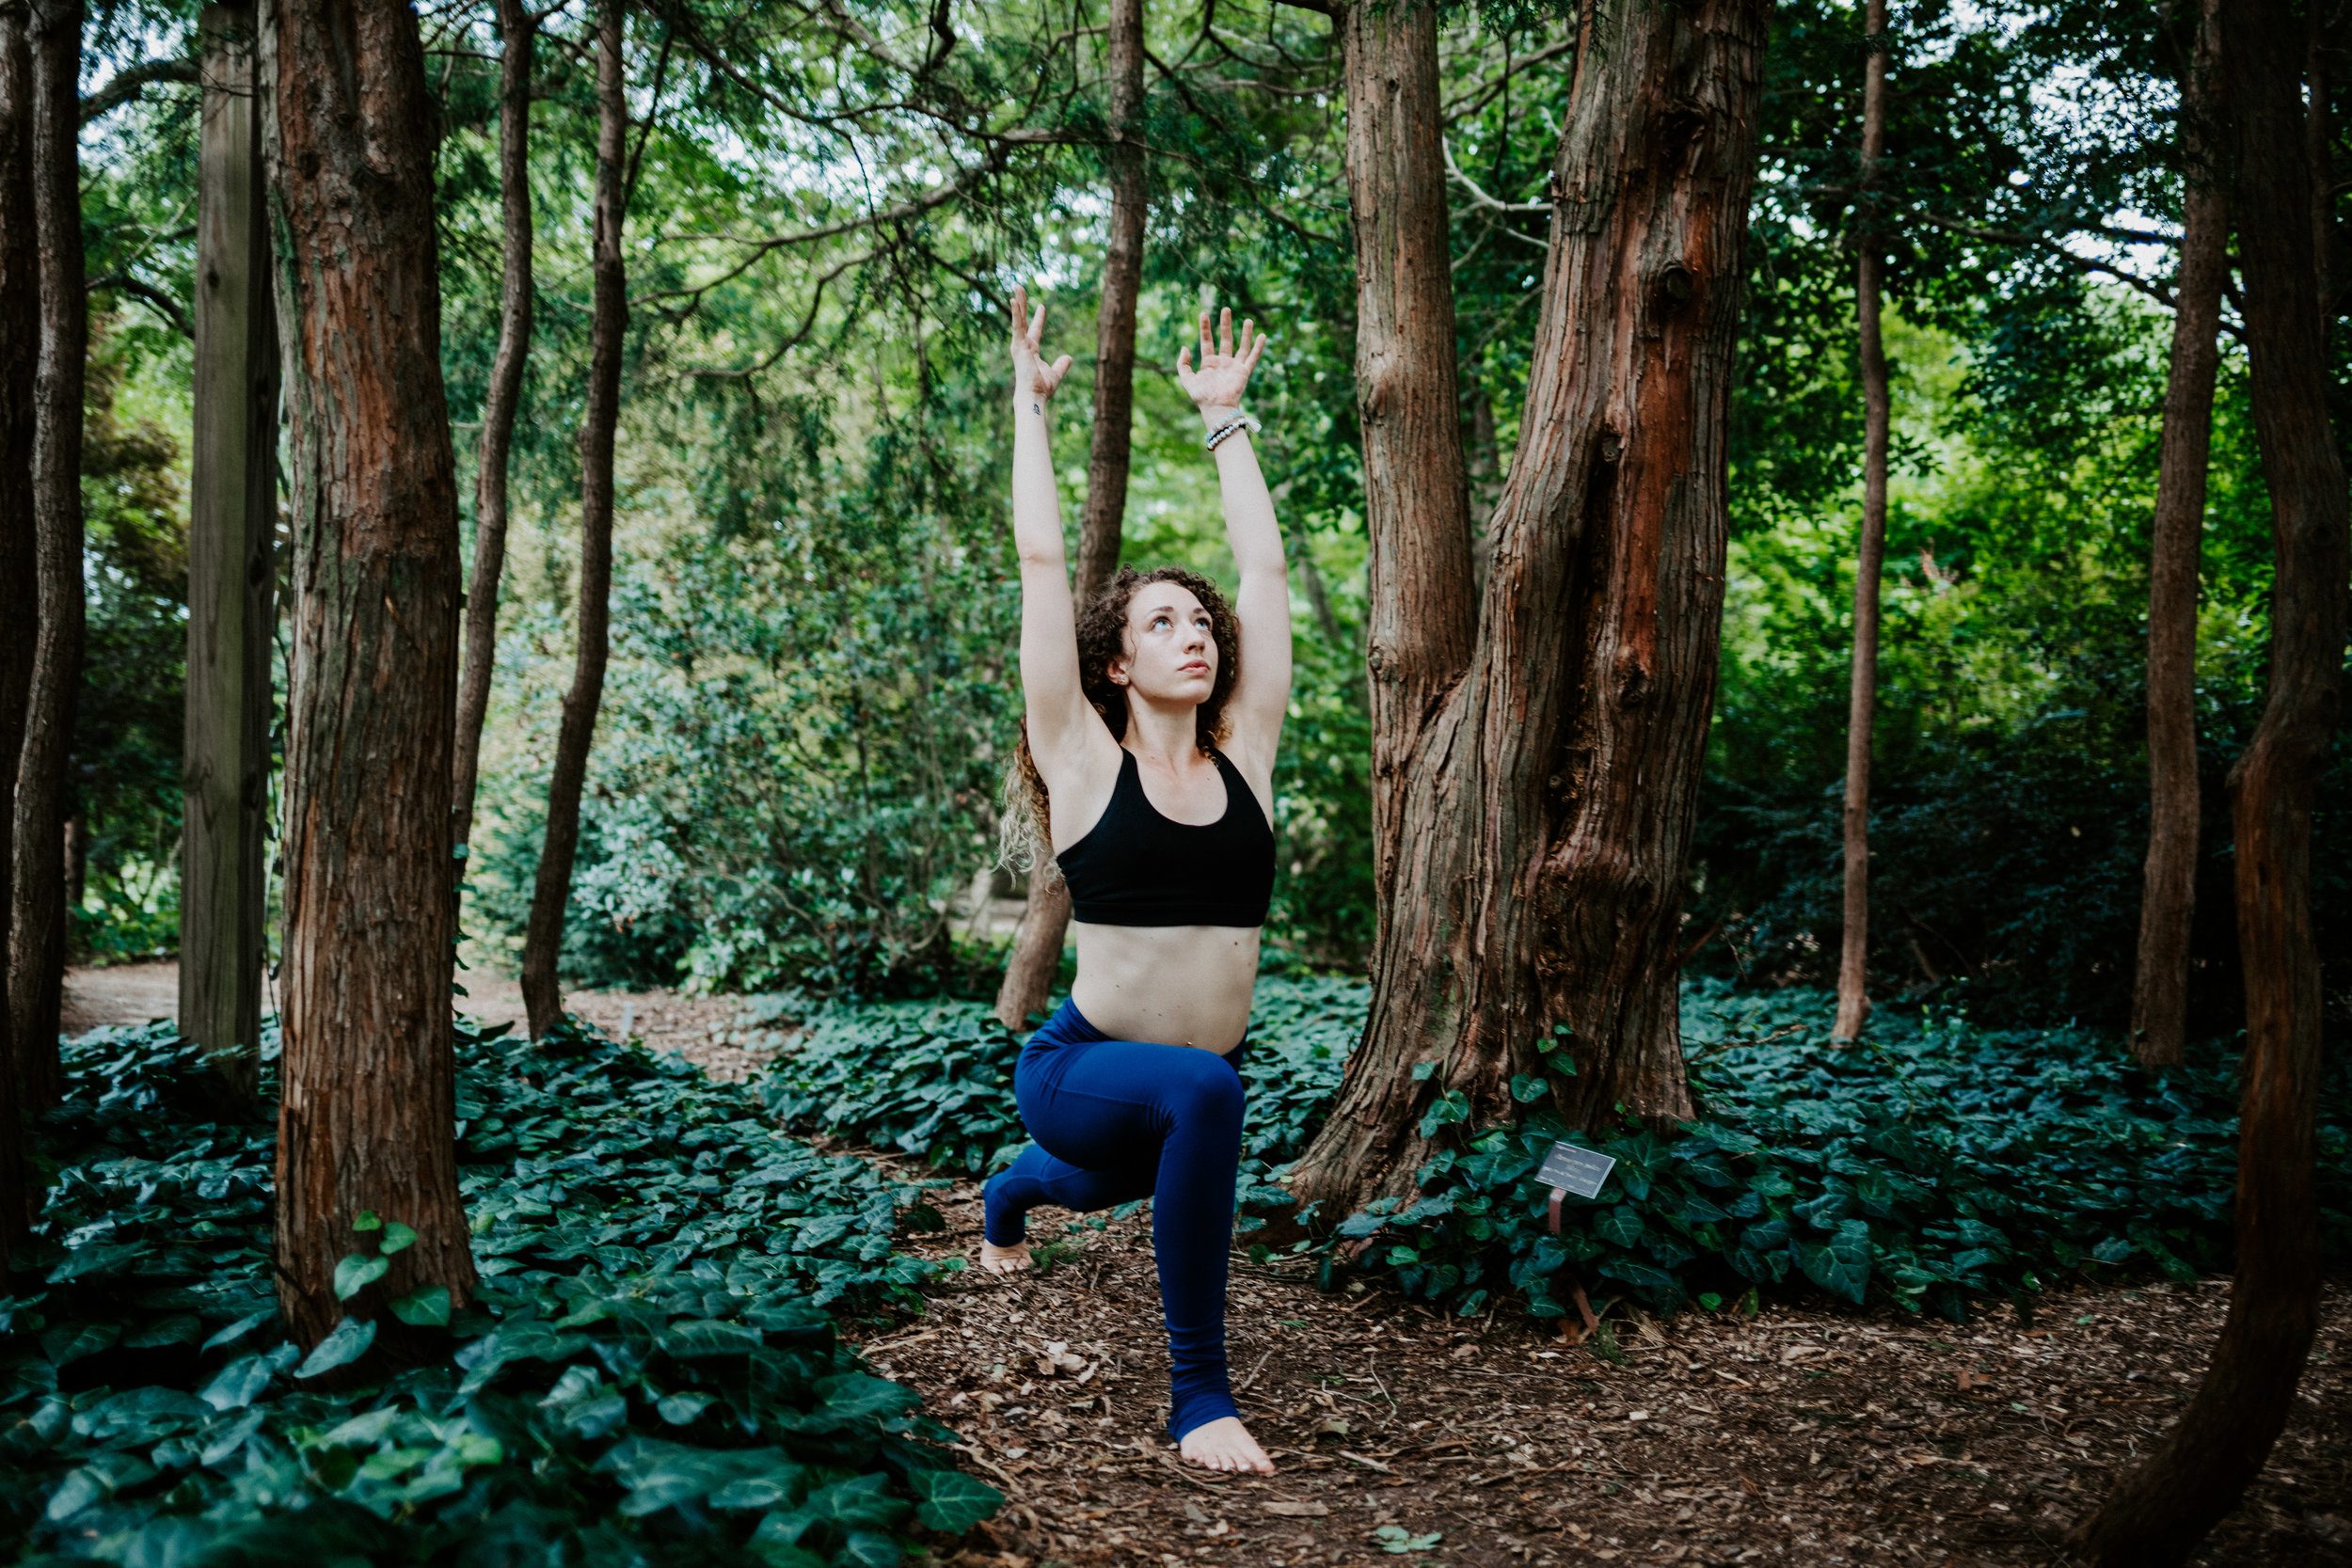 maddie s. - CERTIFIED YOGA INSTRUCTOR - Asheville Yoga Center (from July 2019)